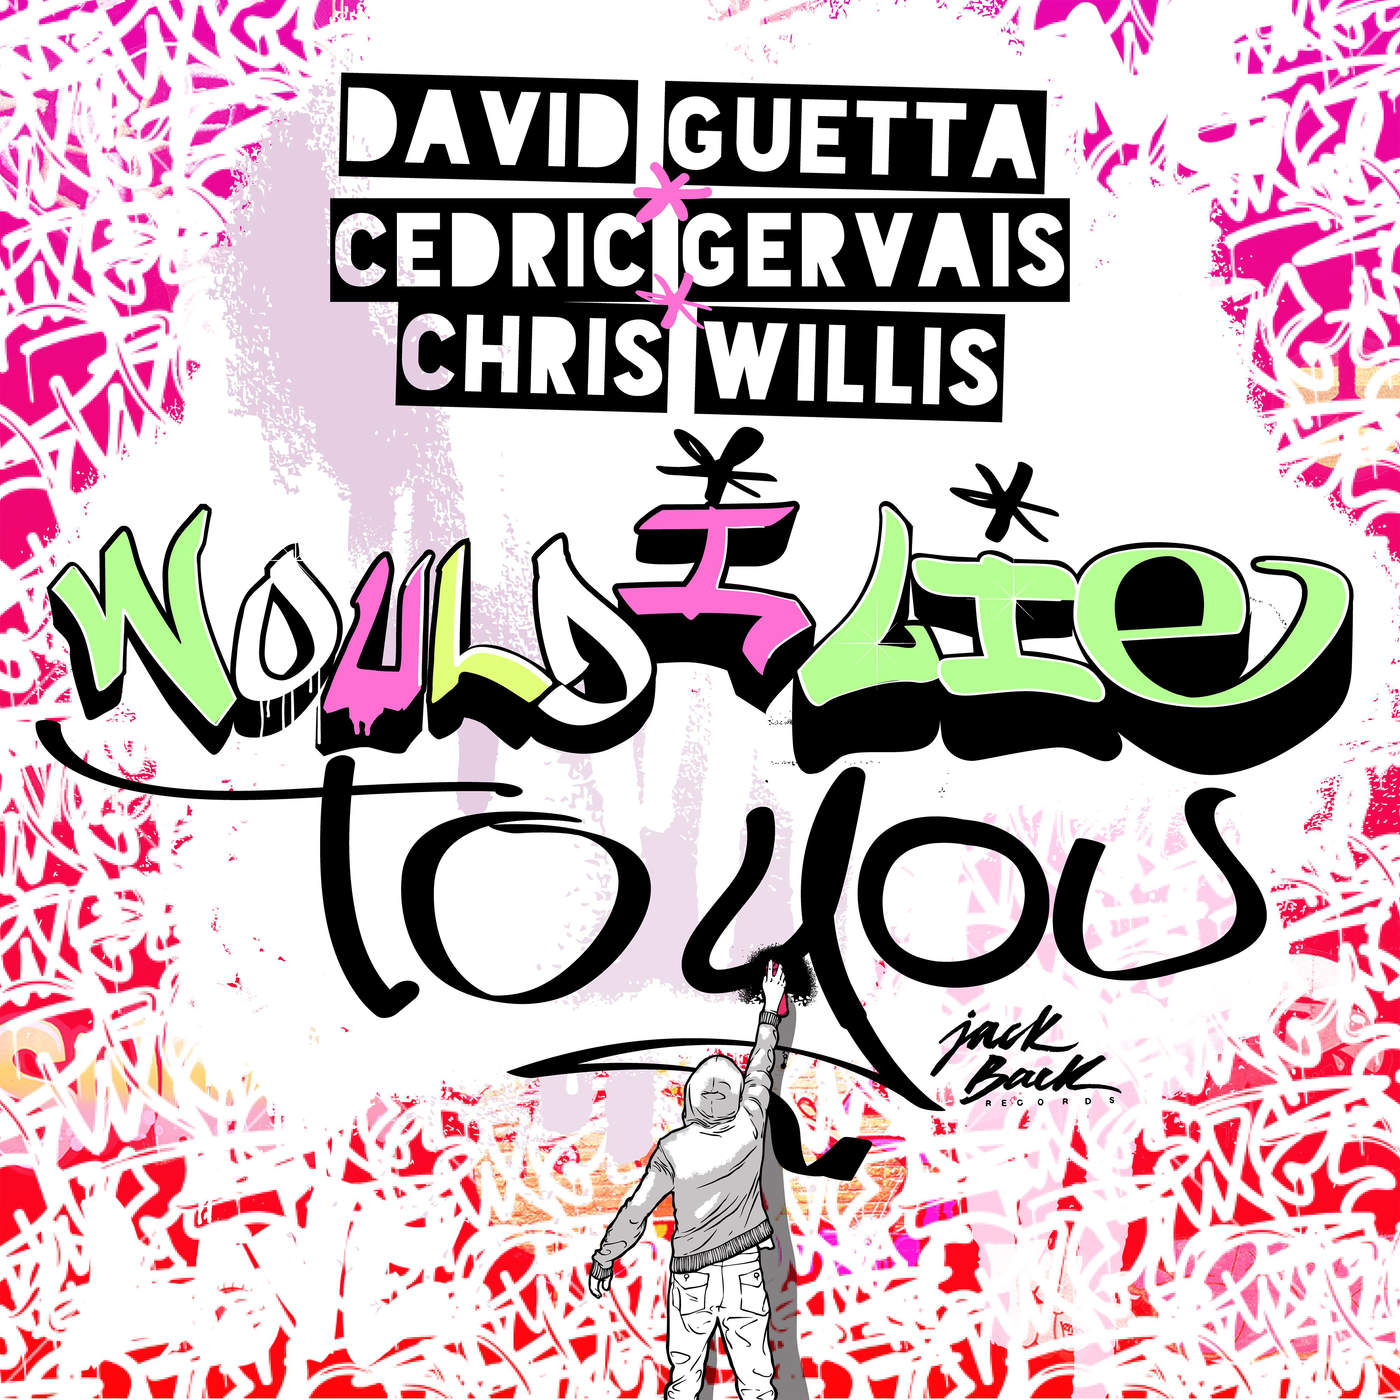 David Guetta, Chris Willis & Cedric Gervais - Would I Lie to You - EP Cover